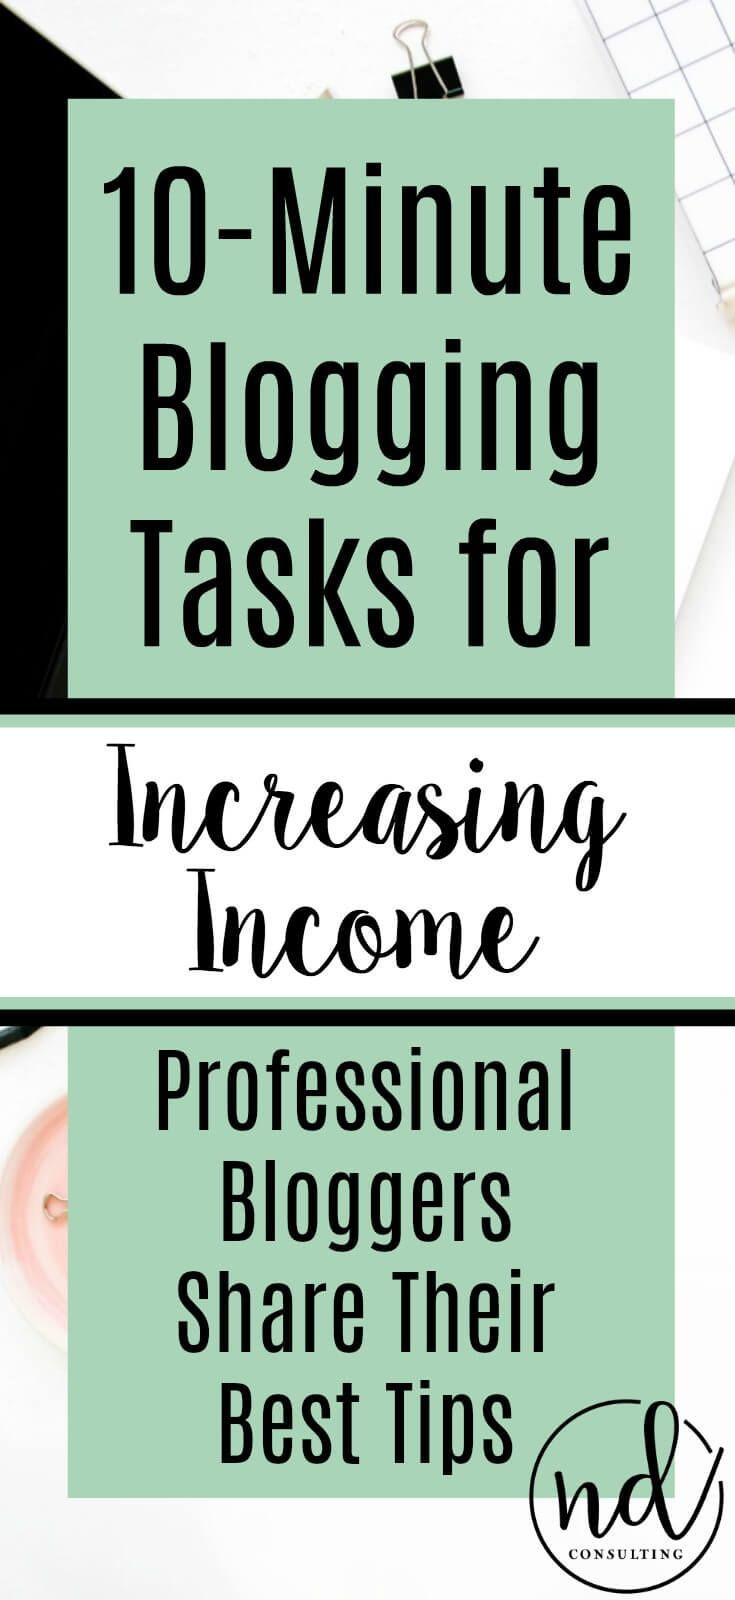 Can you really get more blog income in just 10-minutes? Yes, and these tips from professional bloggers show you how quick blogging tasks generate more money! http://ndcfullcircle.com/10-minute-tasks-for-blog-income/?utm_campaign=coschedule&utm_source=pinterest&utm_medium=ND%20Consulting%20-%20Blog%20to%20Business&utm_content=Blogging%20in%20the%20Margins%3A%2010-Minute%20Tasks%20for%20Blog%20Income #contentmarketing